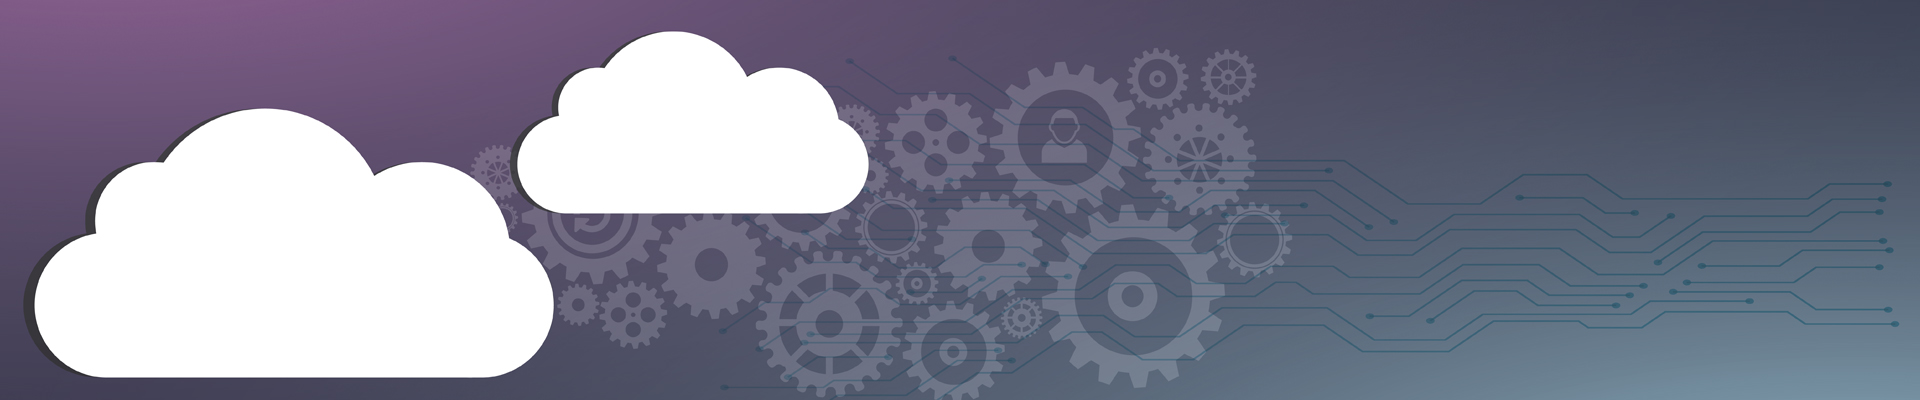 Multi-Cloud Management-banner